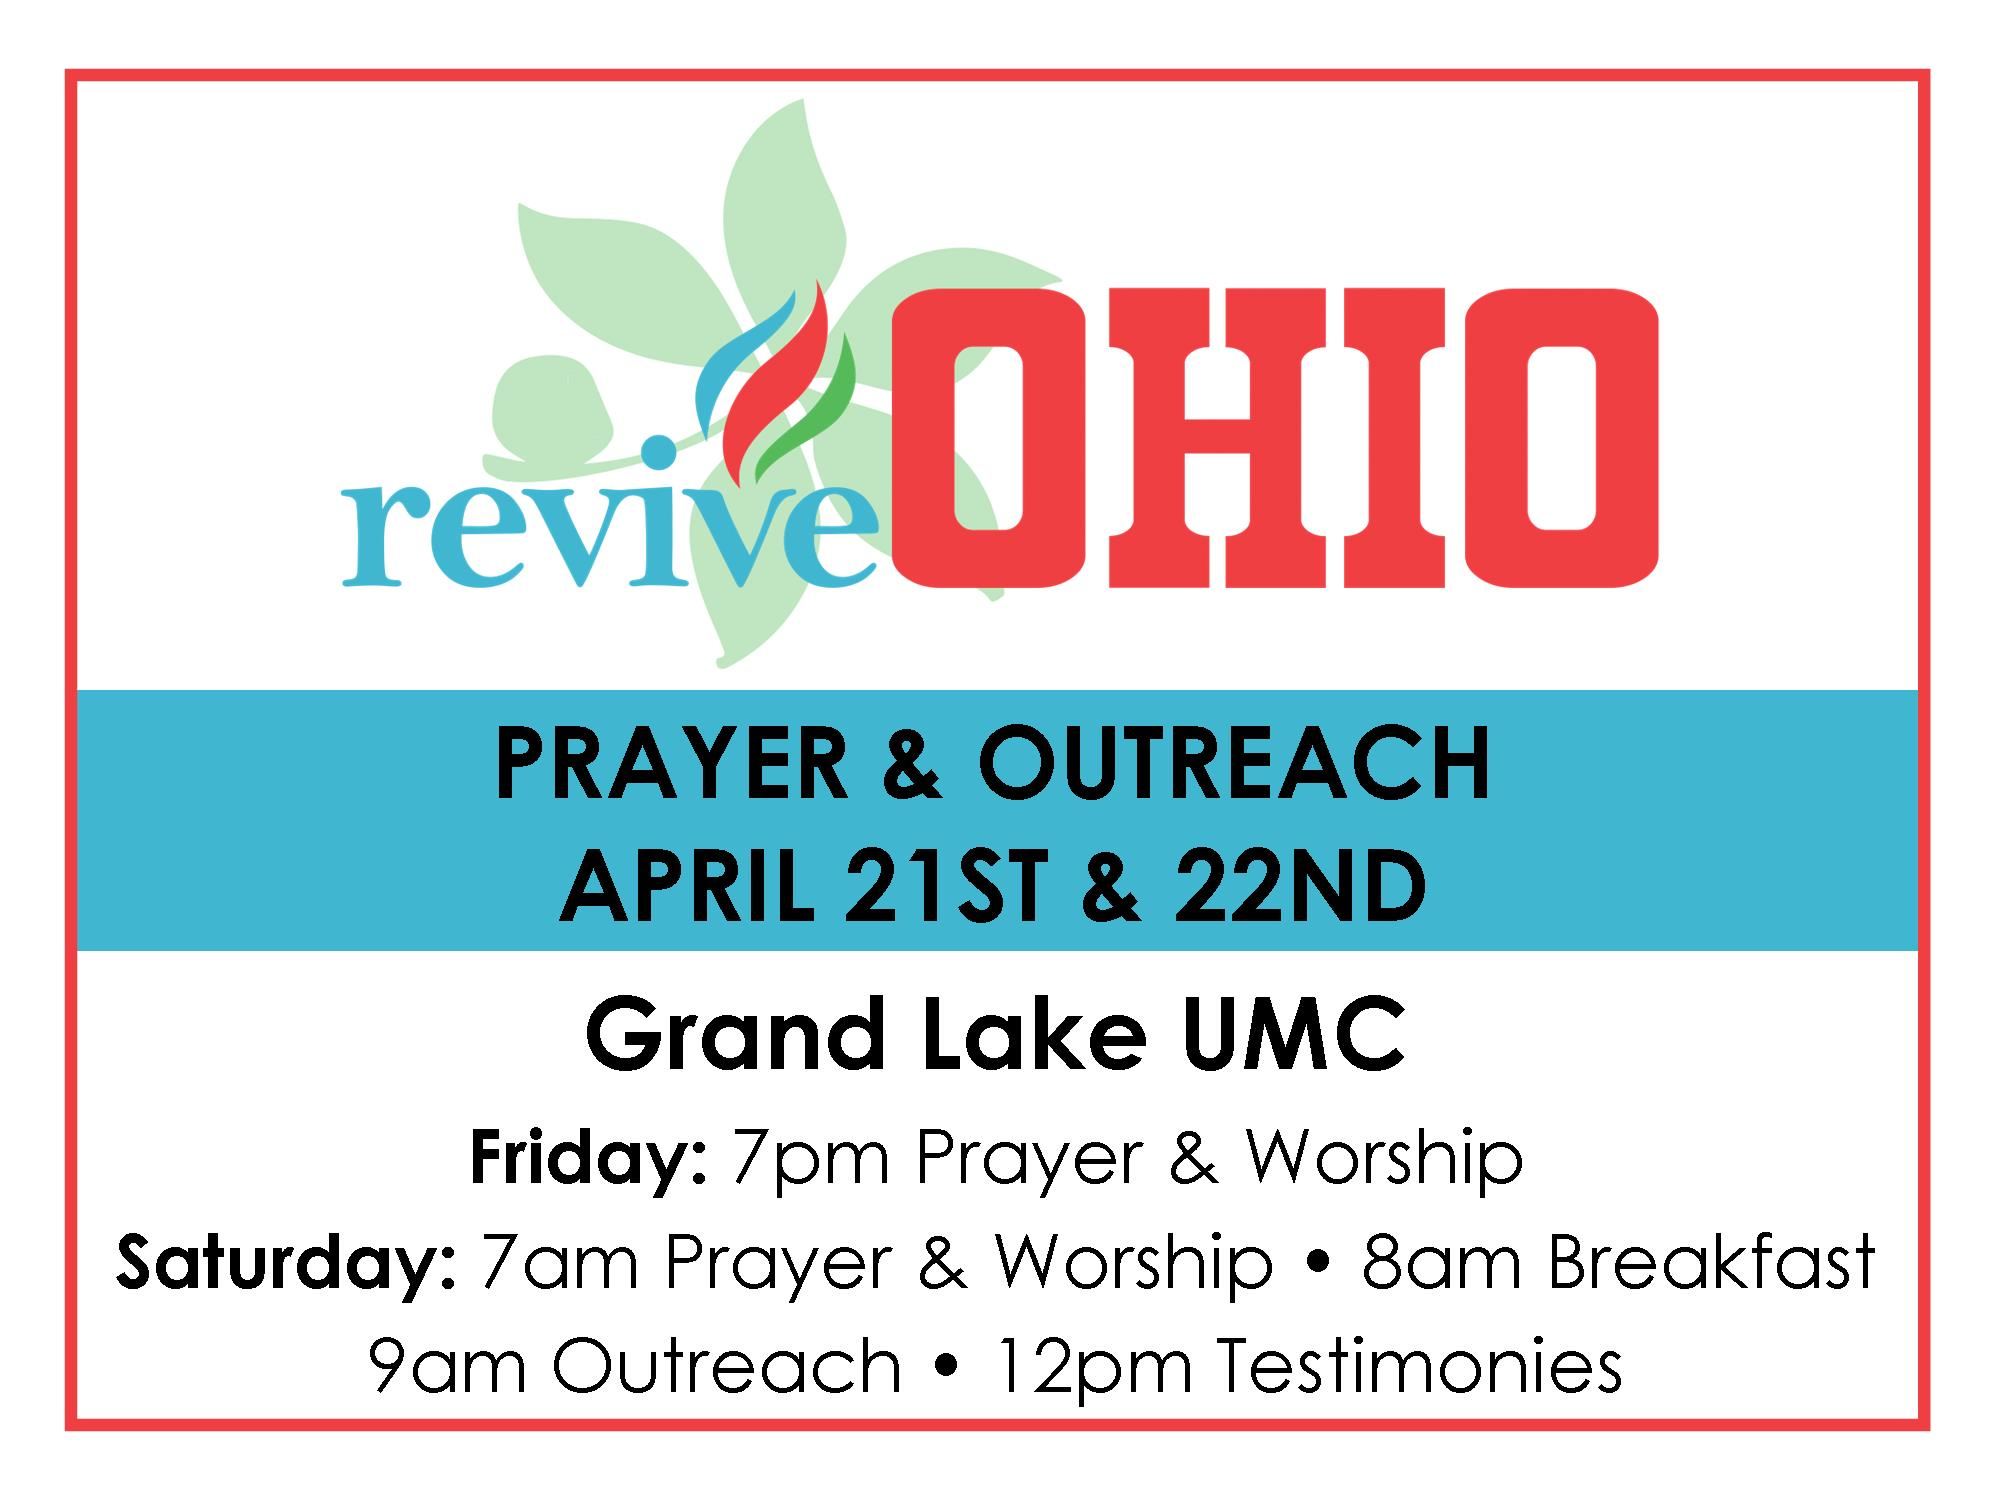 Join us Friday and Saturday, April 21 & 22, ReviveOhio meets at St. Paul's Sanctuary of Grand Lake UMC! On Friday night, there is a community worship at 7:00pm. On Saturday, also at St. Paul's, the day begins with prayer at 7:00am, breakfast at 8:00am, outreach to the community at 9:00am. At 11:45am, those participating meet back at St. Paul's Sanctuary for testimonies and worship. Come and take part in this outreach ministry to our communities!